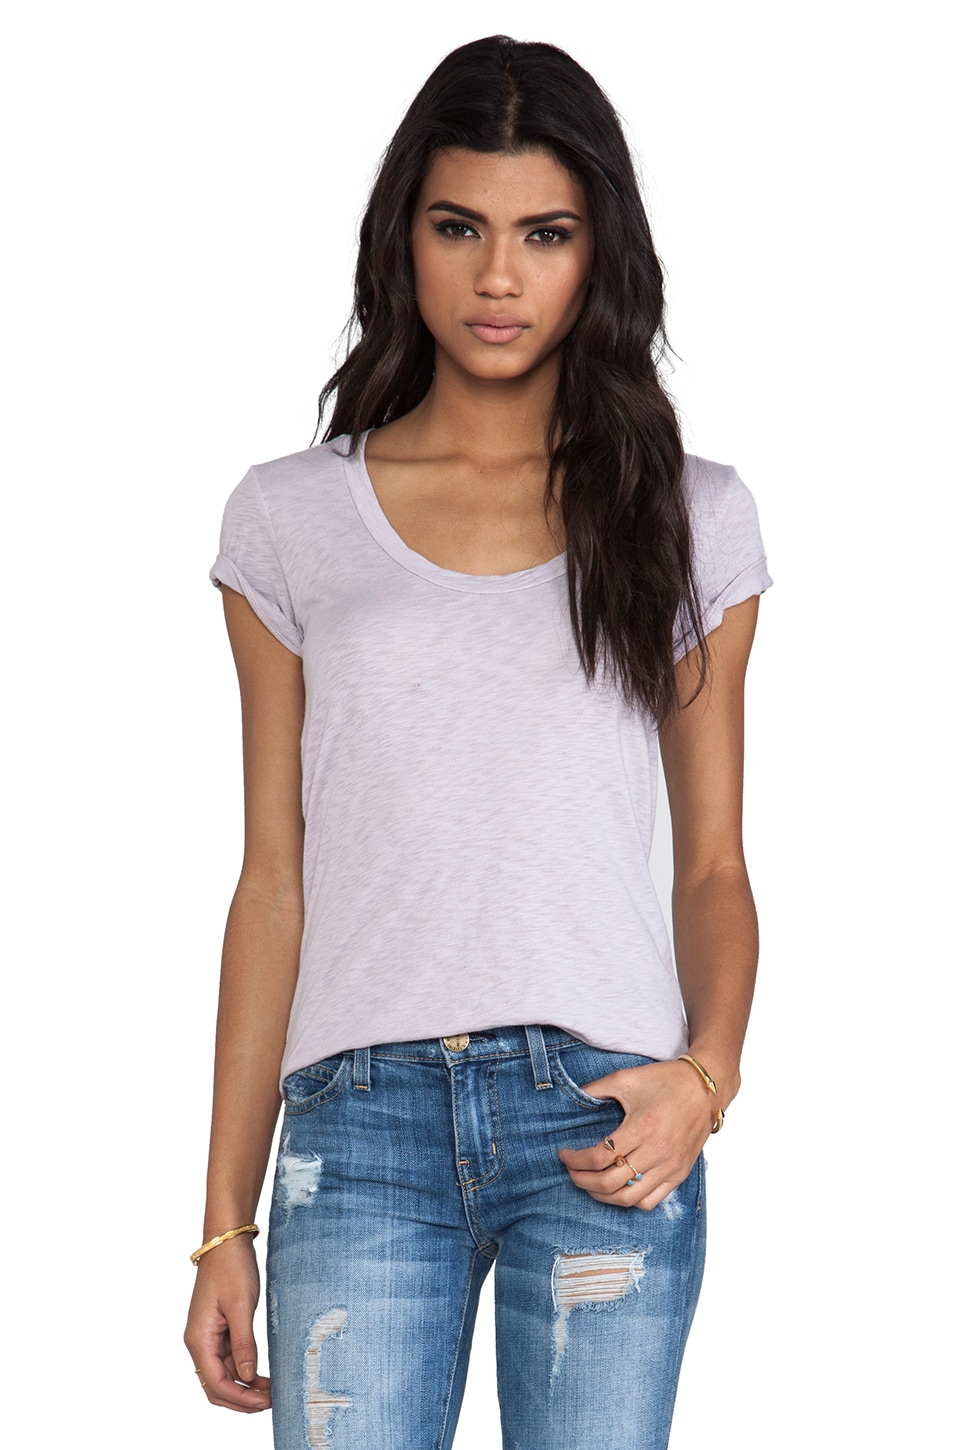 Velvet by Graham & Spencer Velvet Luxe Slub Koren Tee in Fin